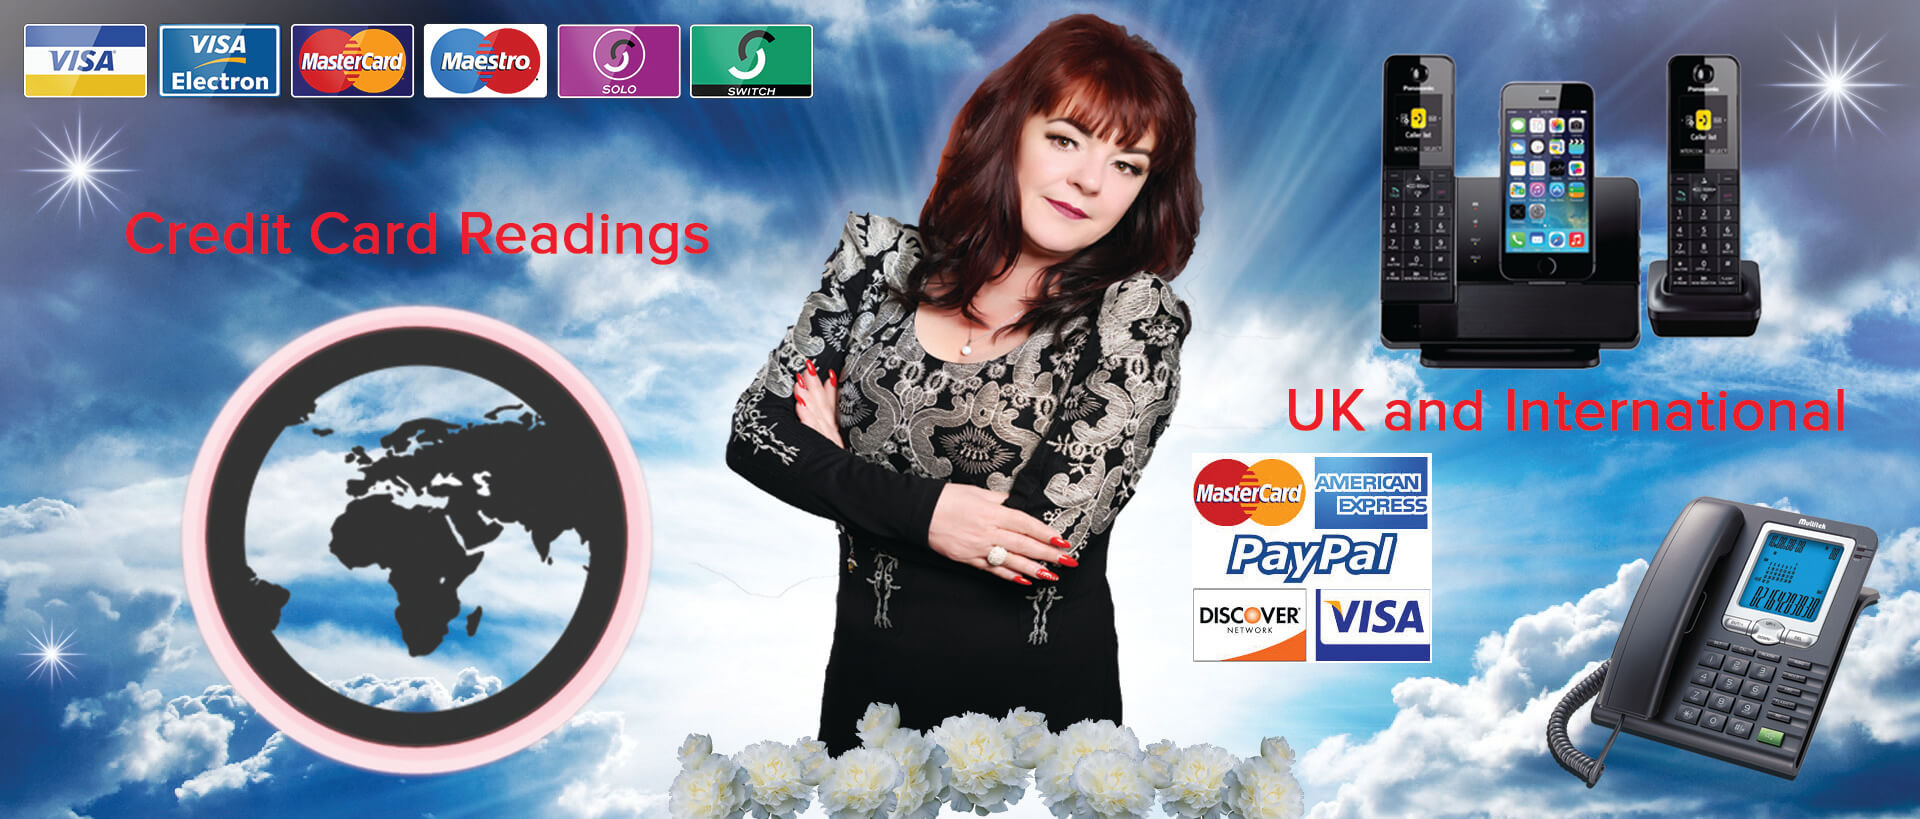 online psychic readings, dee rendall, credit card phone readings, psychic, spiritual